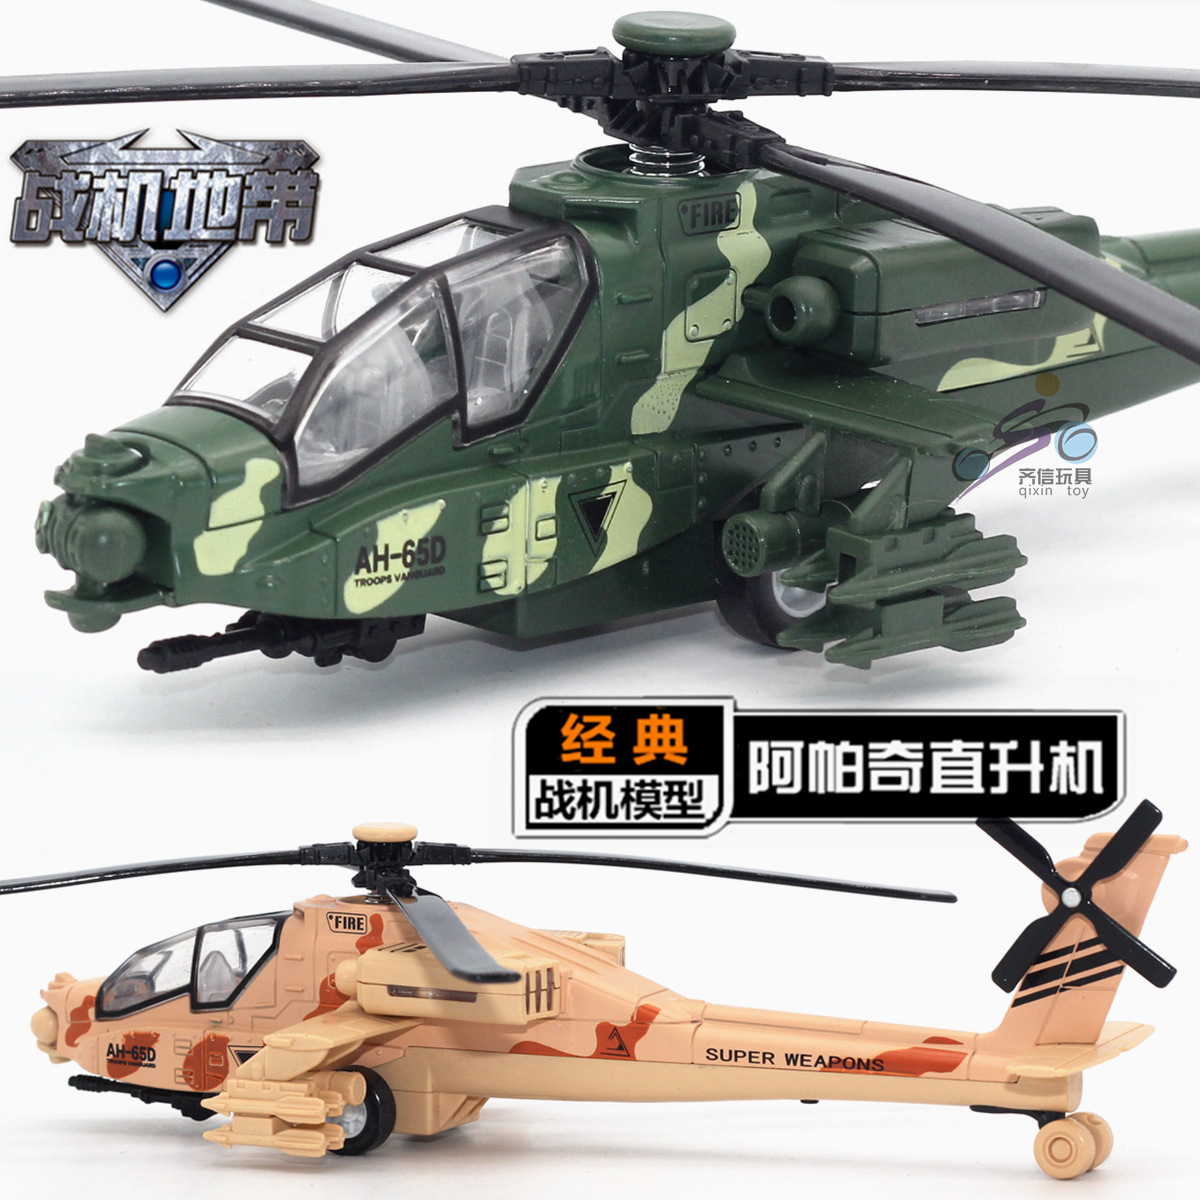 Childrens toys,Alloy model plane,Apache plane,A helicopter aircraft,Pull Back plane,Helicopter